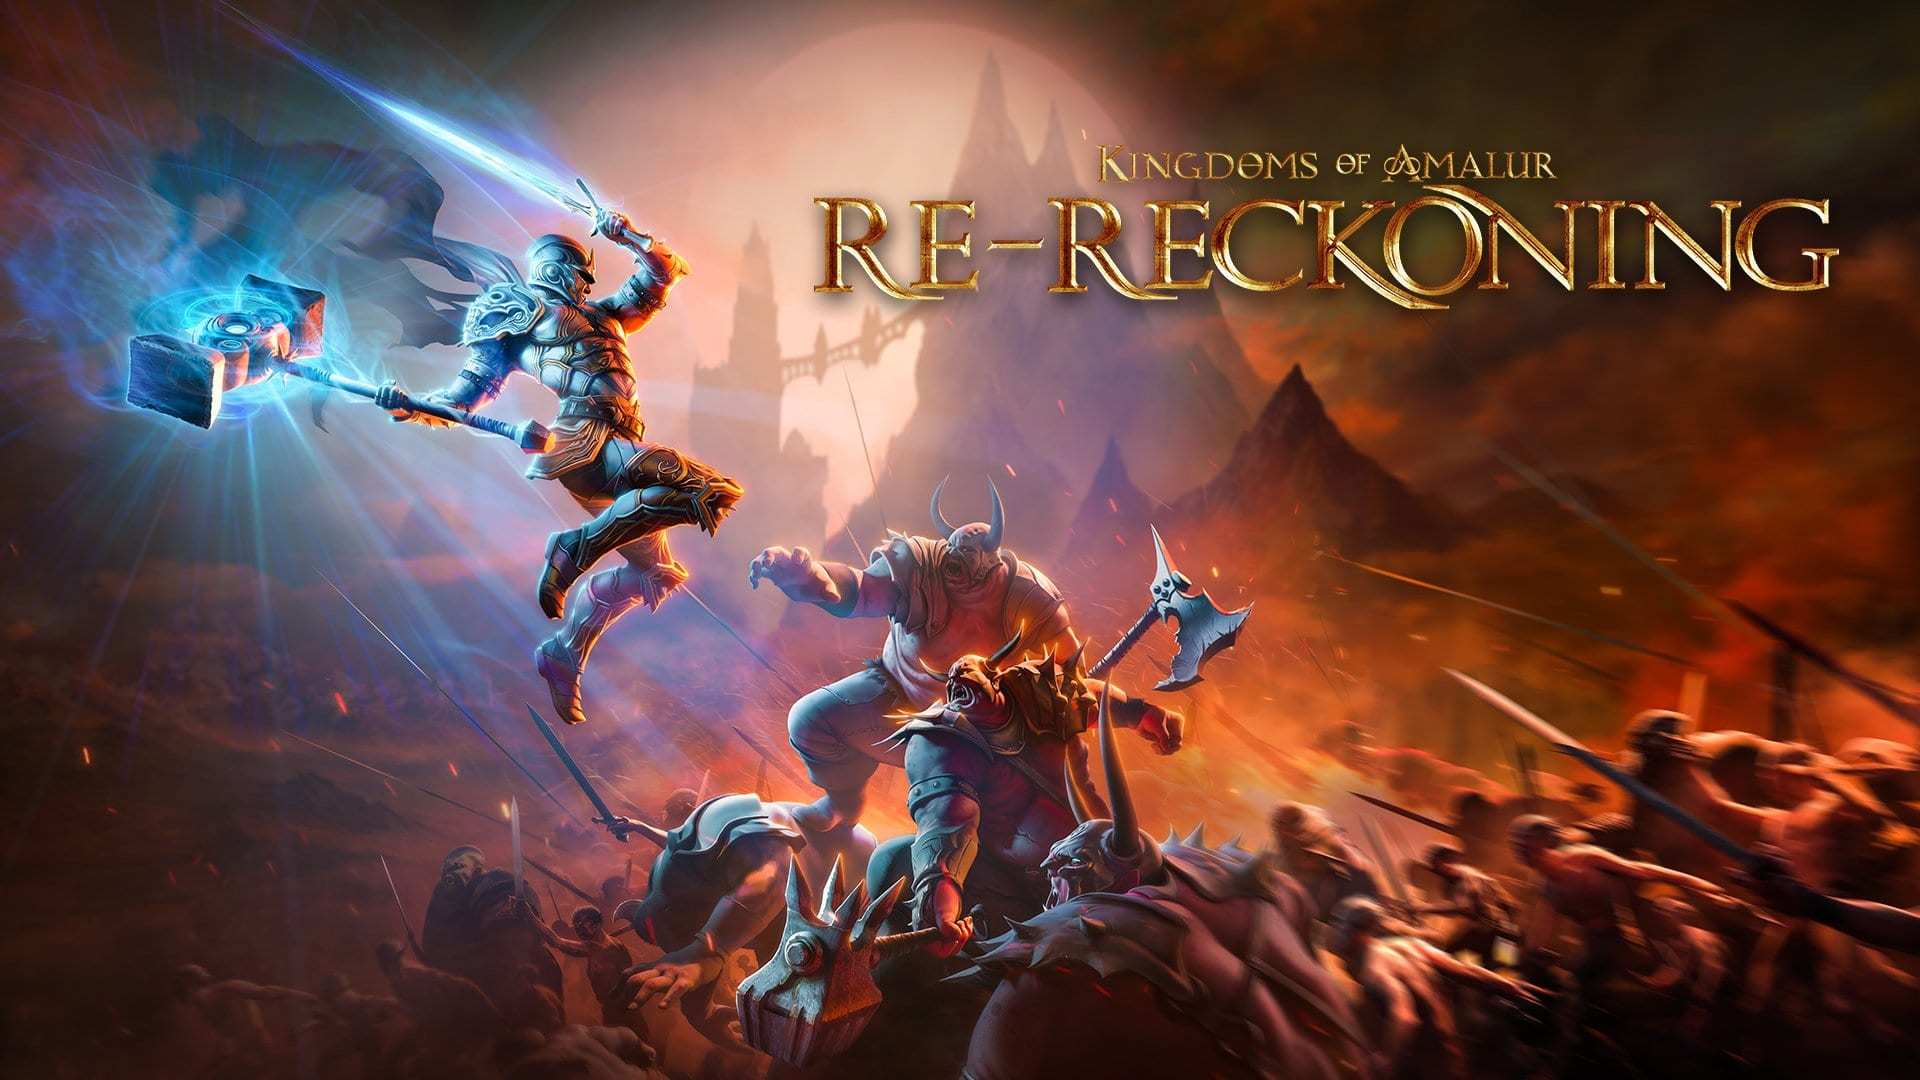 Kingdoms of Amalur: Re-Reckoning Critic Review